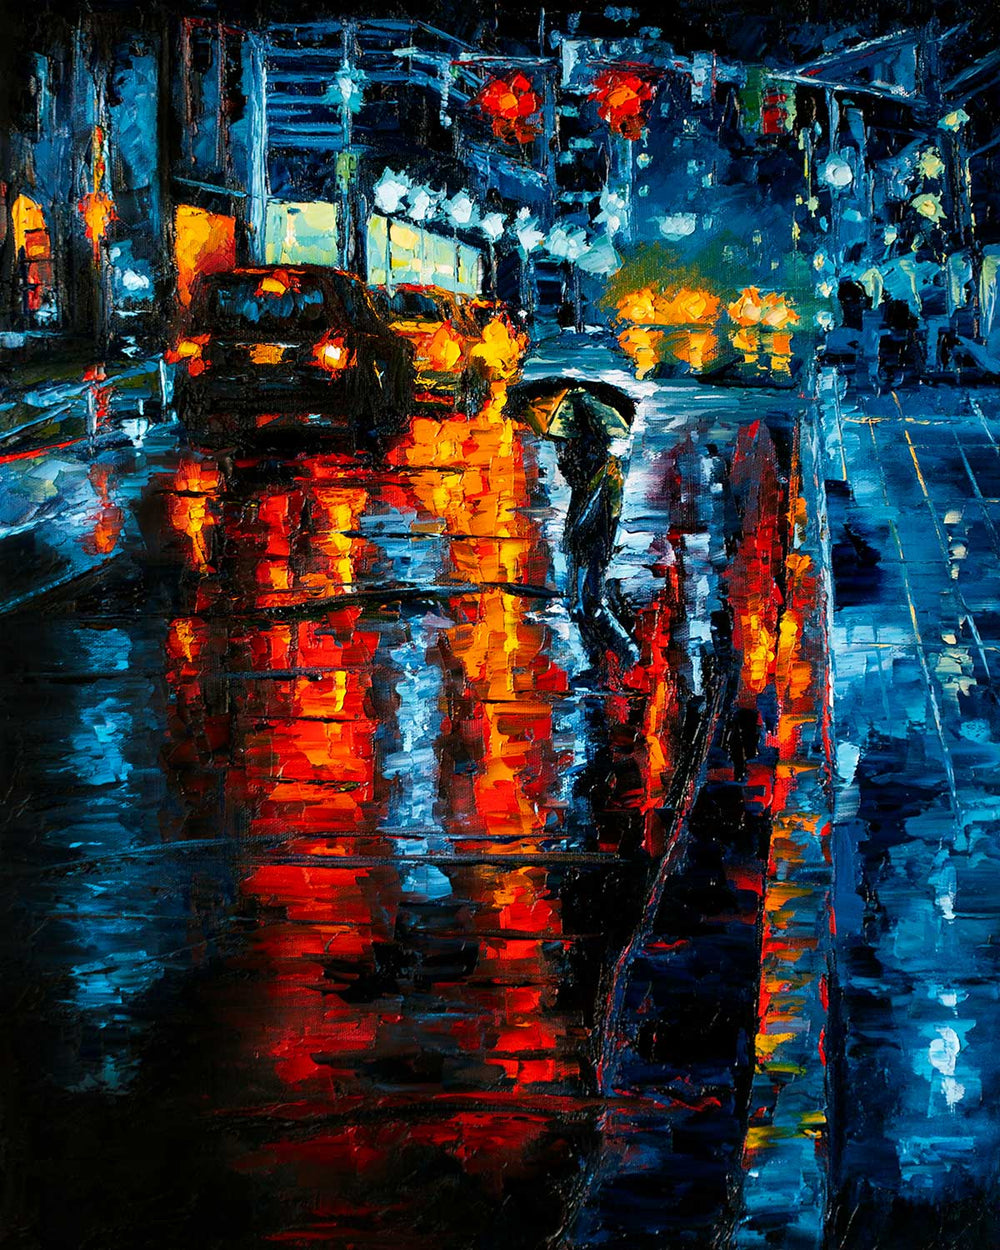 Original oil painting of New York City street in the rain with blue and orange reflected lights